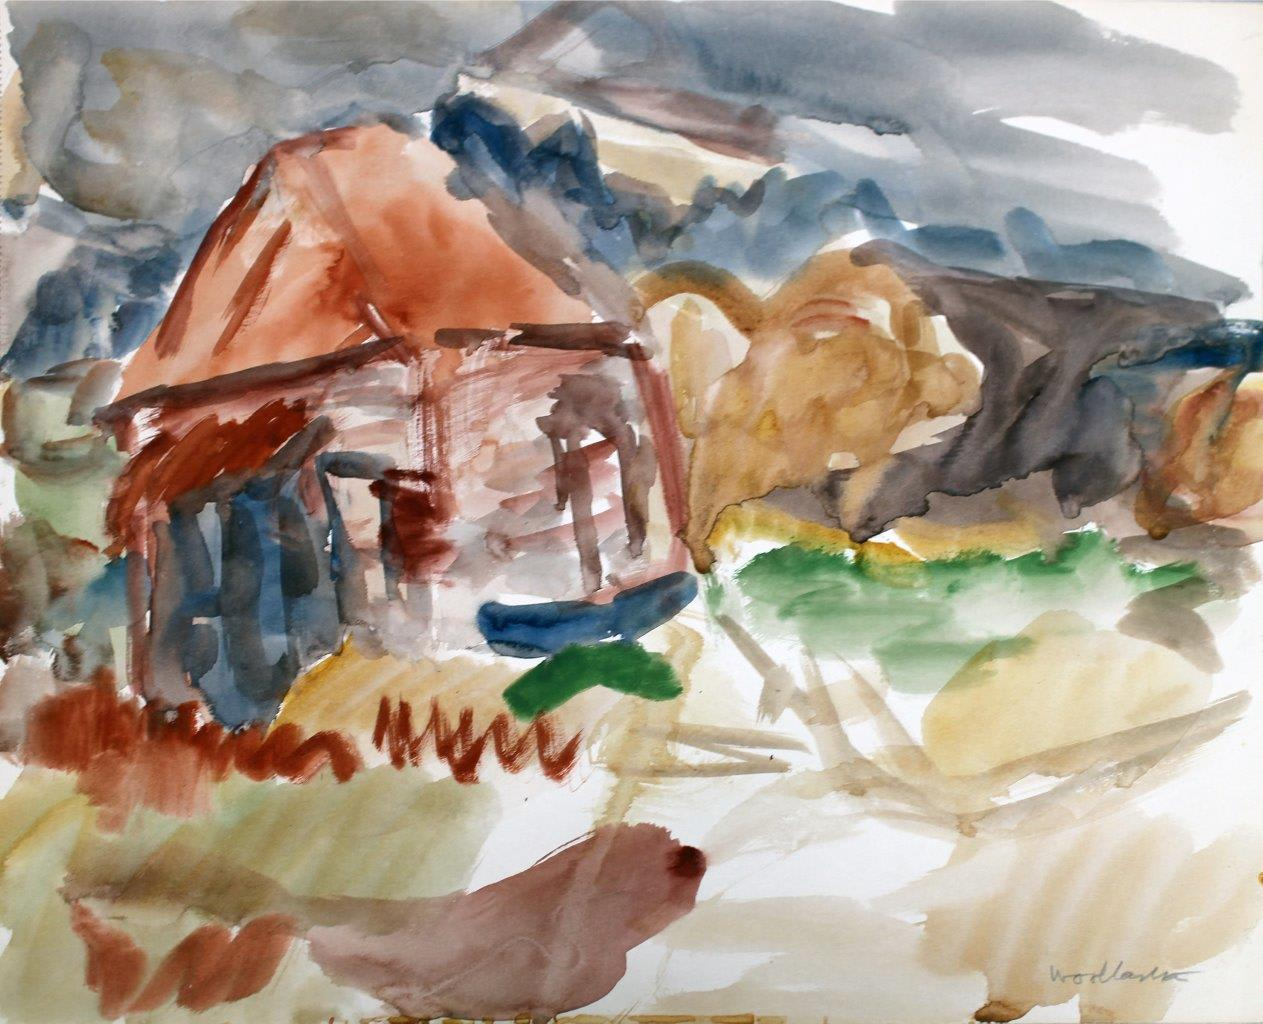 <span class=&#34;link fancybox-details-link&#34;><a href=&#34;/exhibitions/57/works/artworks5032/&#34;>View Detail Page</a></span><div class=&#34;signed_and_dated&#34;>Signed bottom right corner</div> <div class=&#34;medium&#34;>Watercolour on paper</div> <div class=&#34;dimensions&#34;>12.6 x 15.6 in<br />32 x 39.5 cm</div>